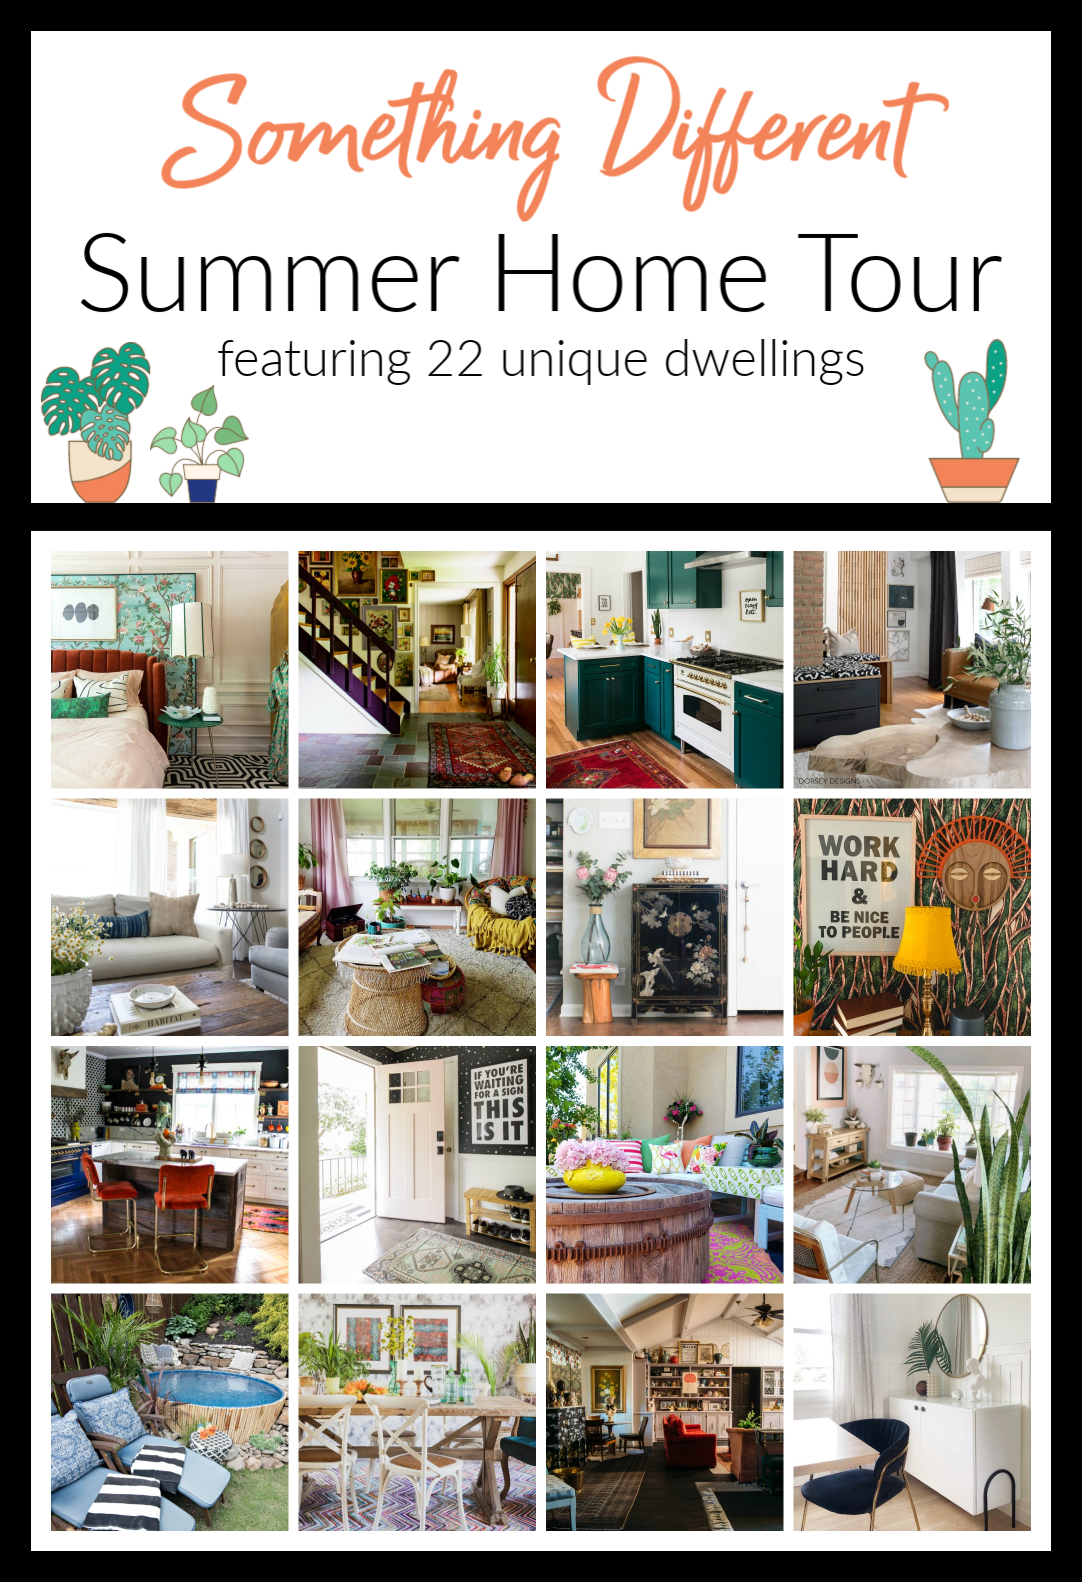 It's the 'Something Different Summer Home Tour'. We all have different styles and unique tastes. There's so much to be inspired by!   House Homemade